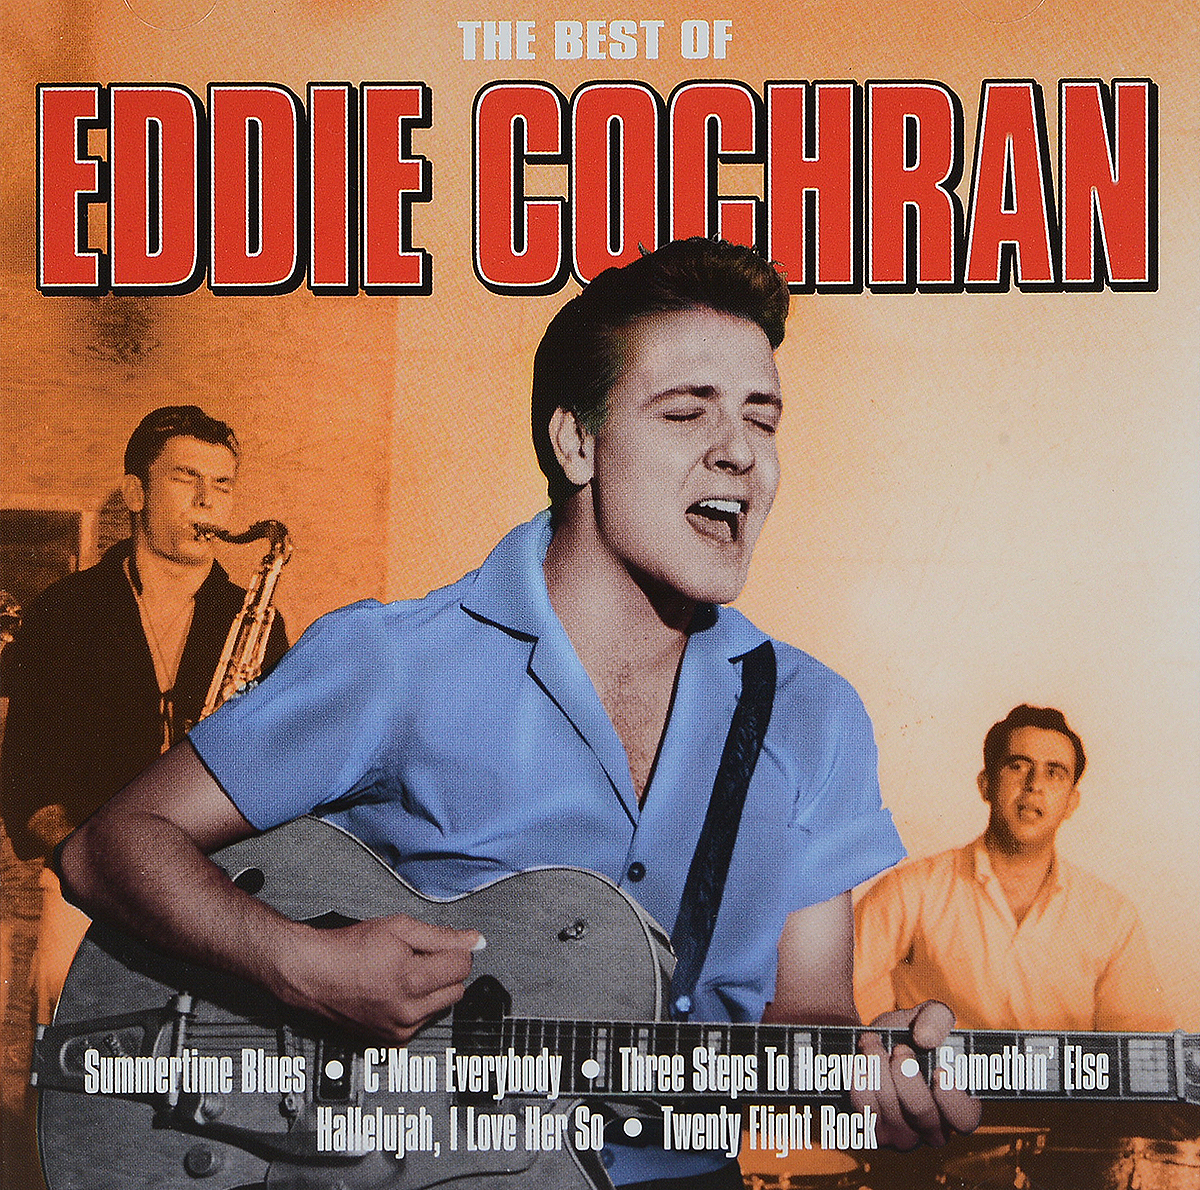 COCHRAN, EDDIE. THE BEST OF the best chrismas